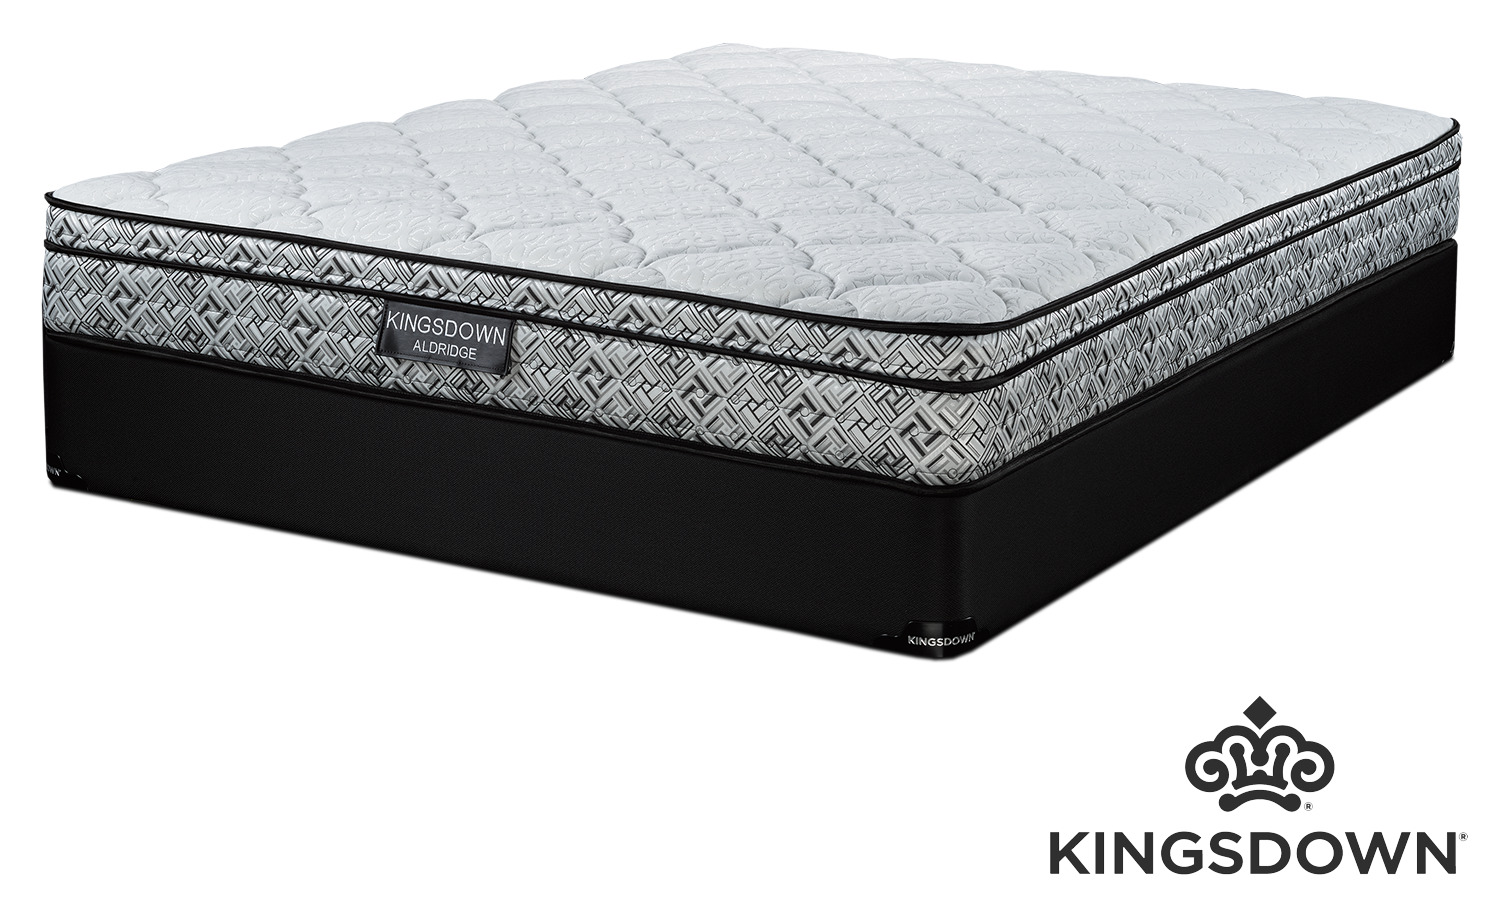 Kingsdown Aldridge Cushion Firm Twin Mattress and Boxspring Set